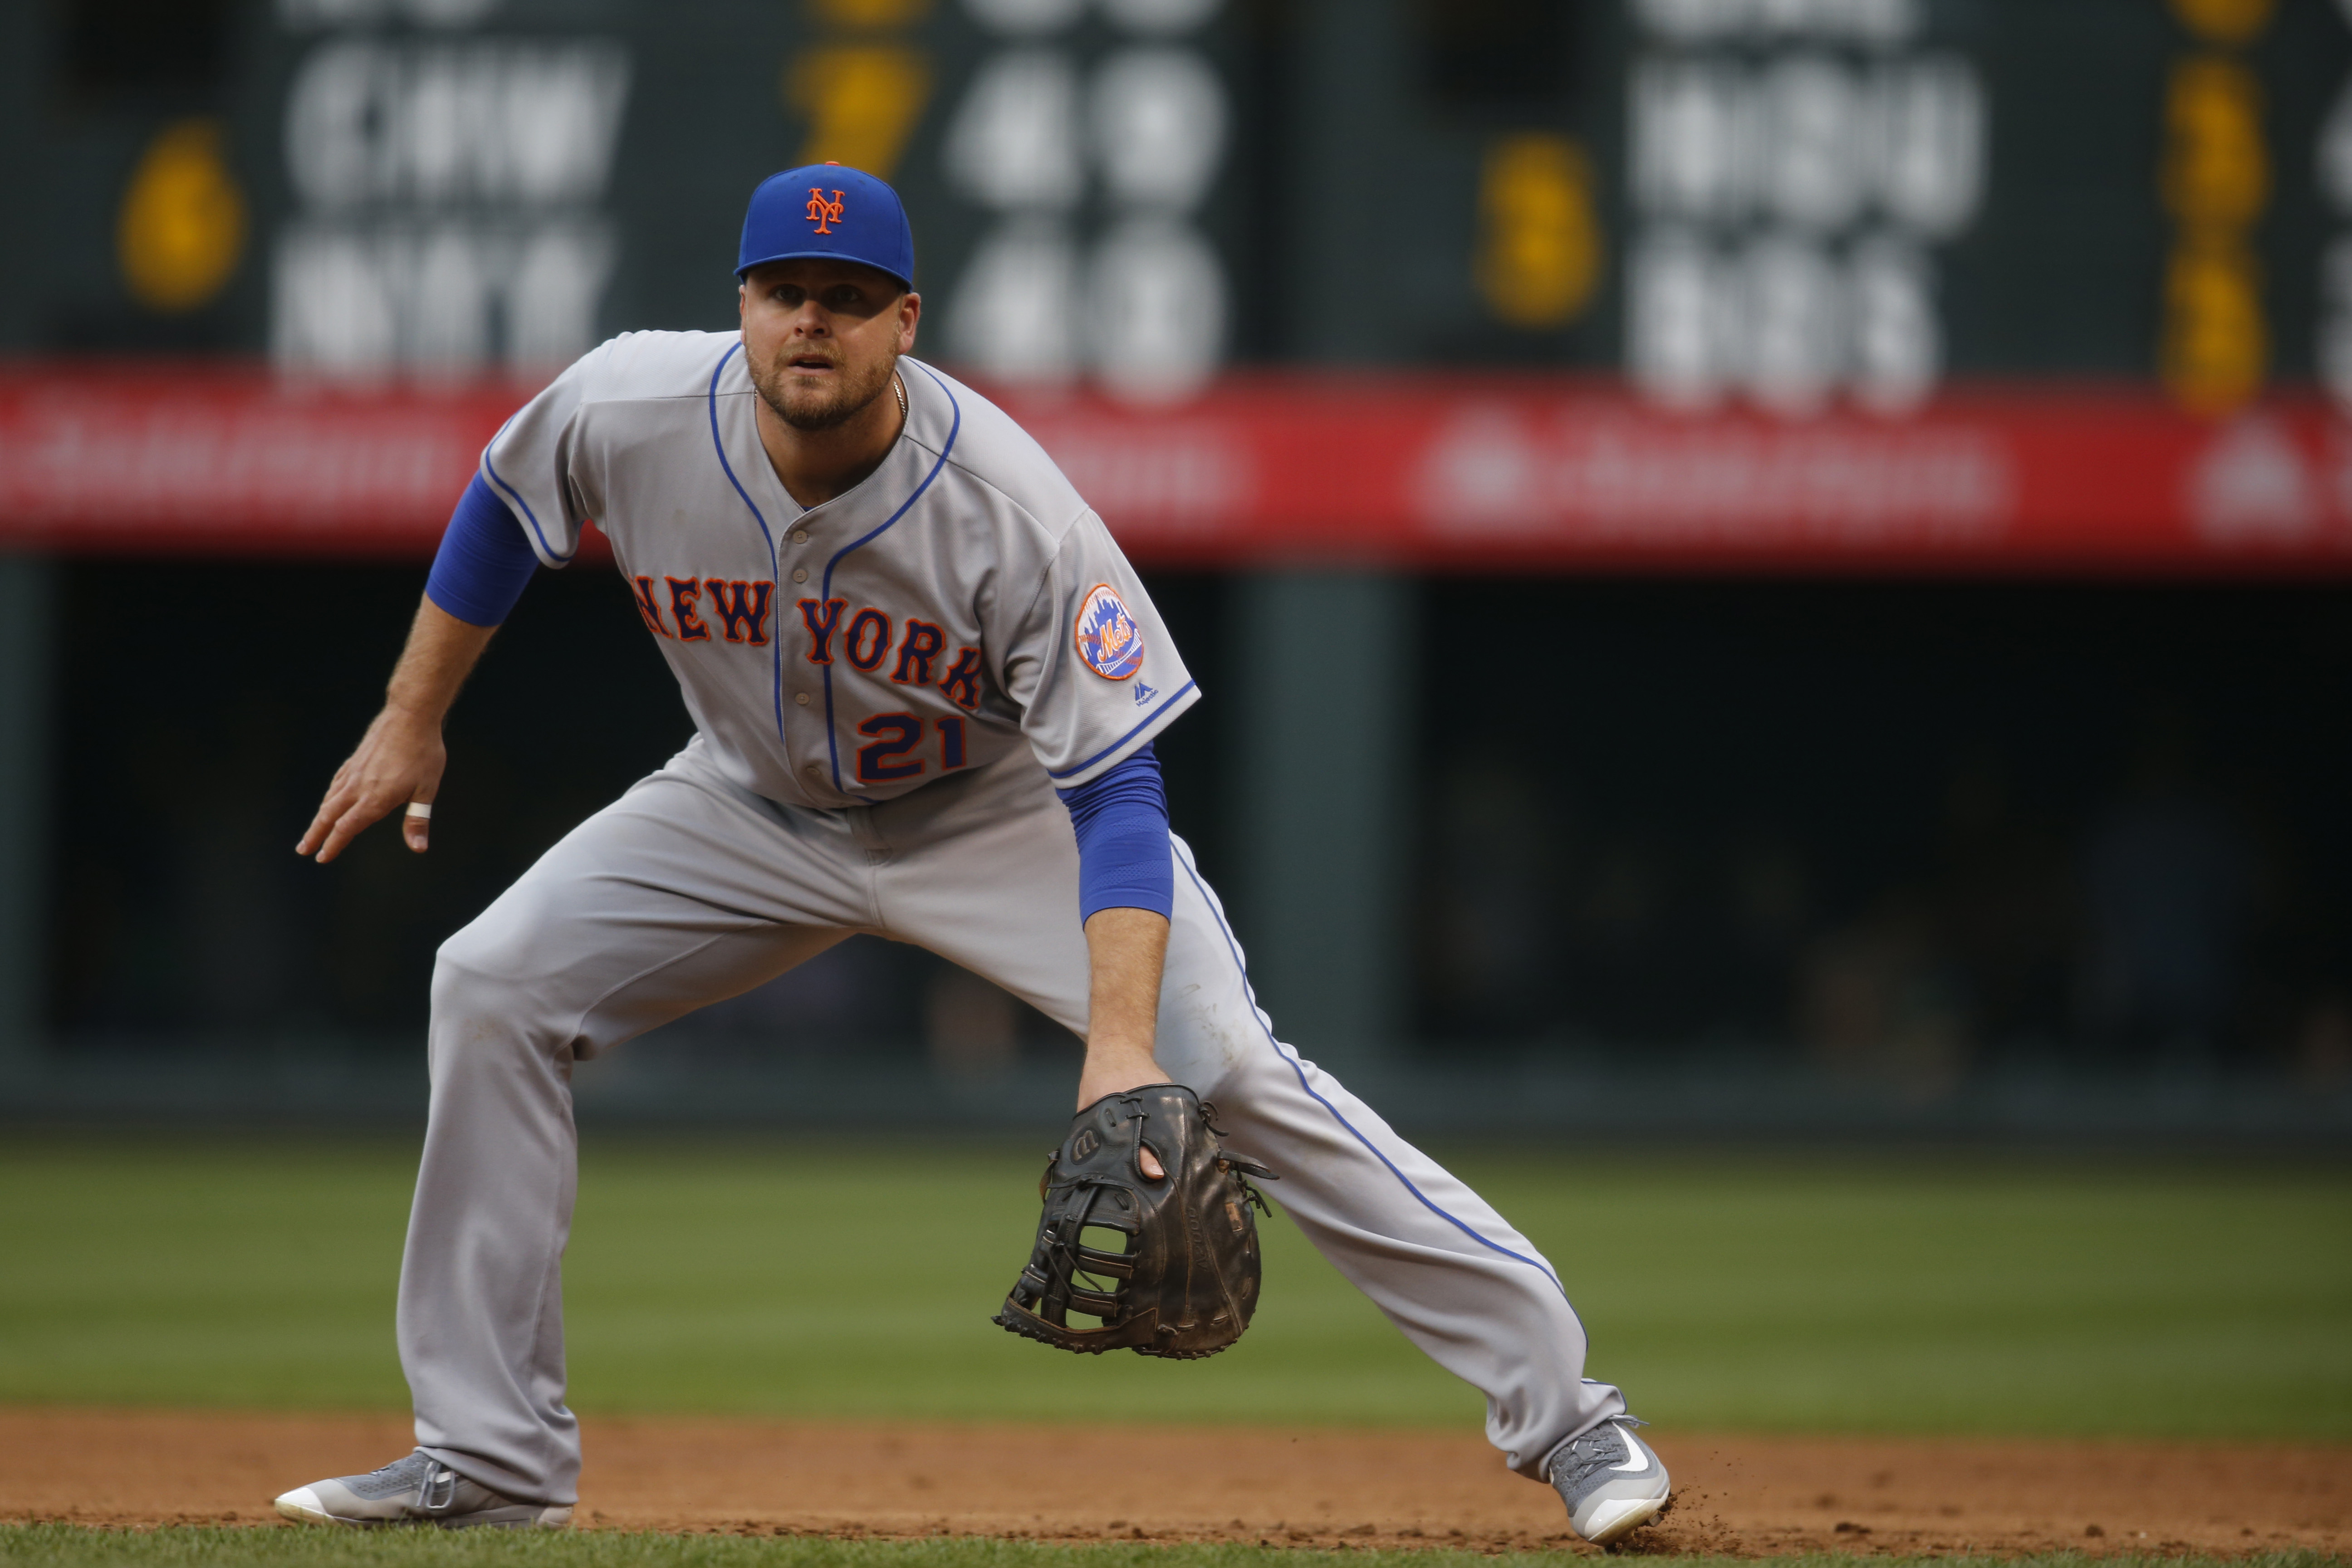 New York Mets first baseman Lucas Duda (21) in the first inning of a baseball game Friday, May 13, 2016, in Denver. (AP Photo/David Zalubowski)